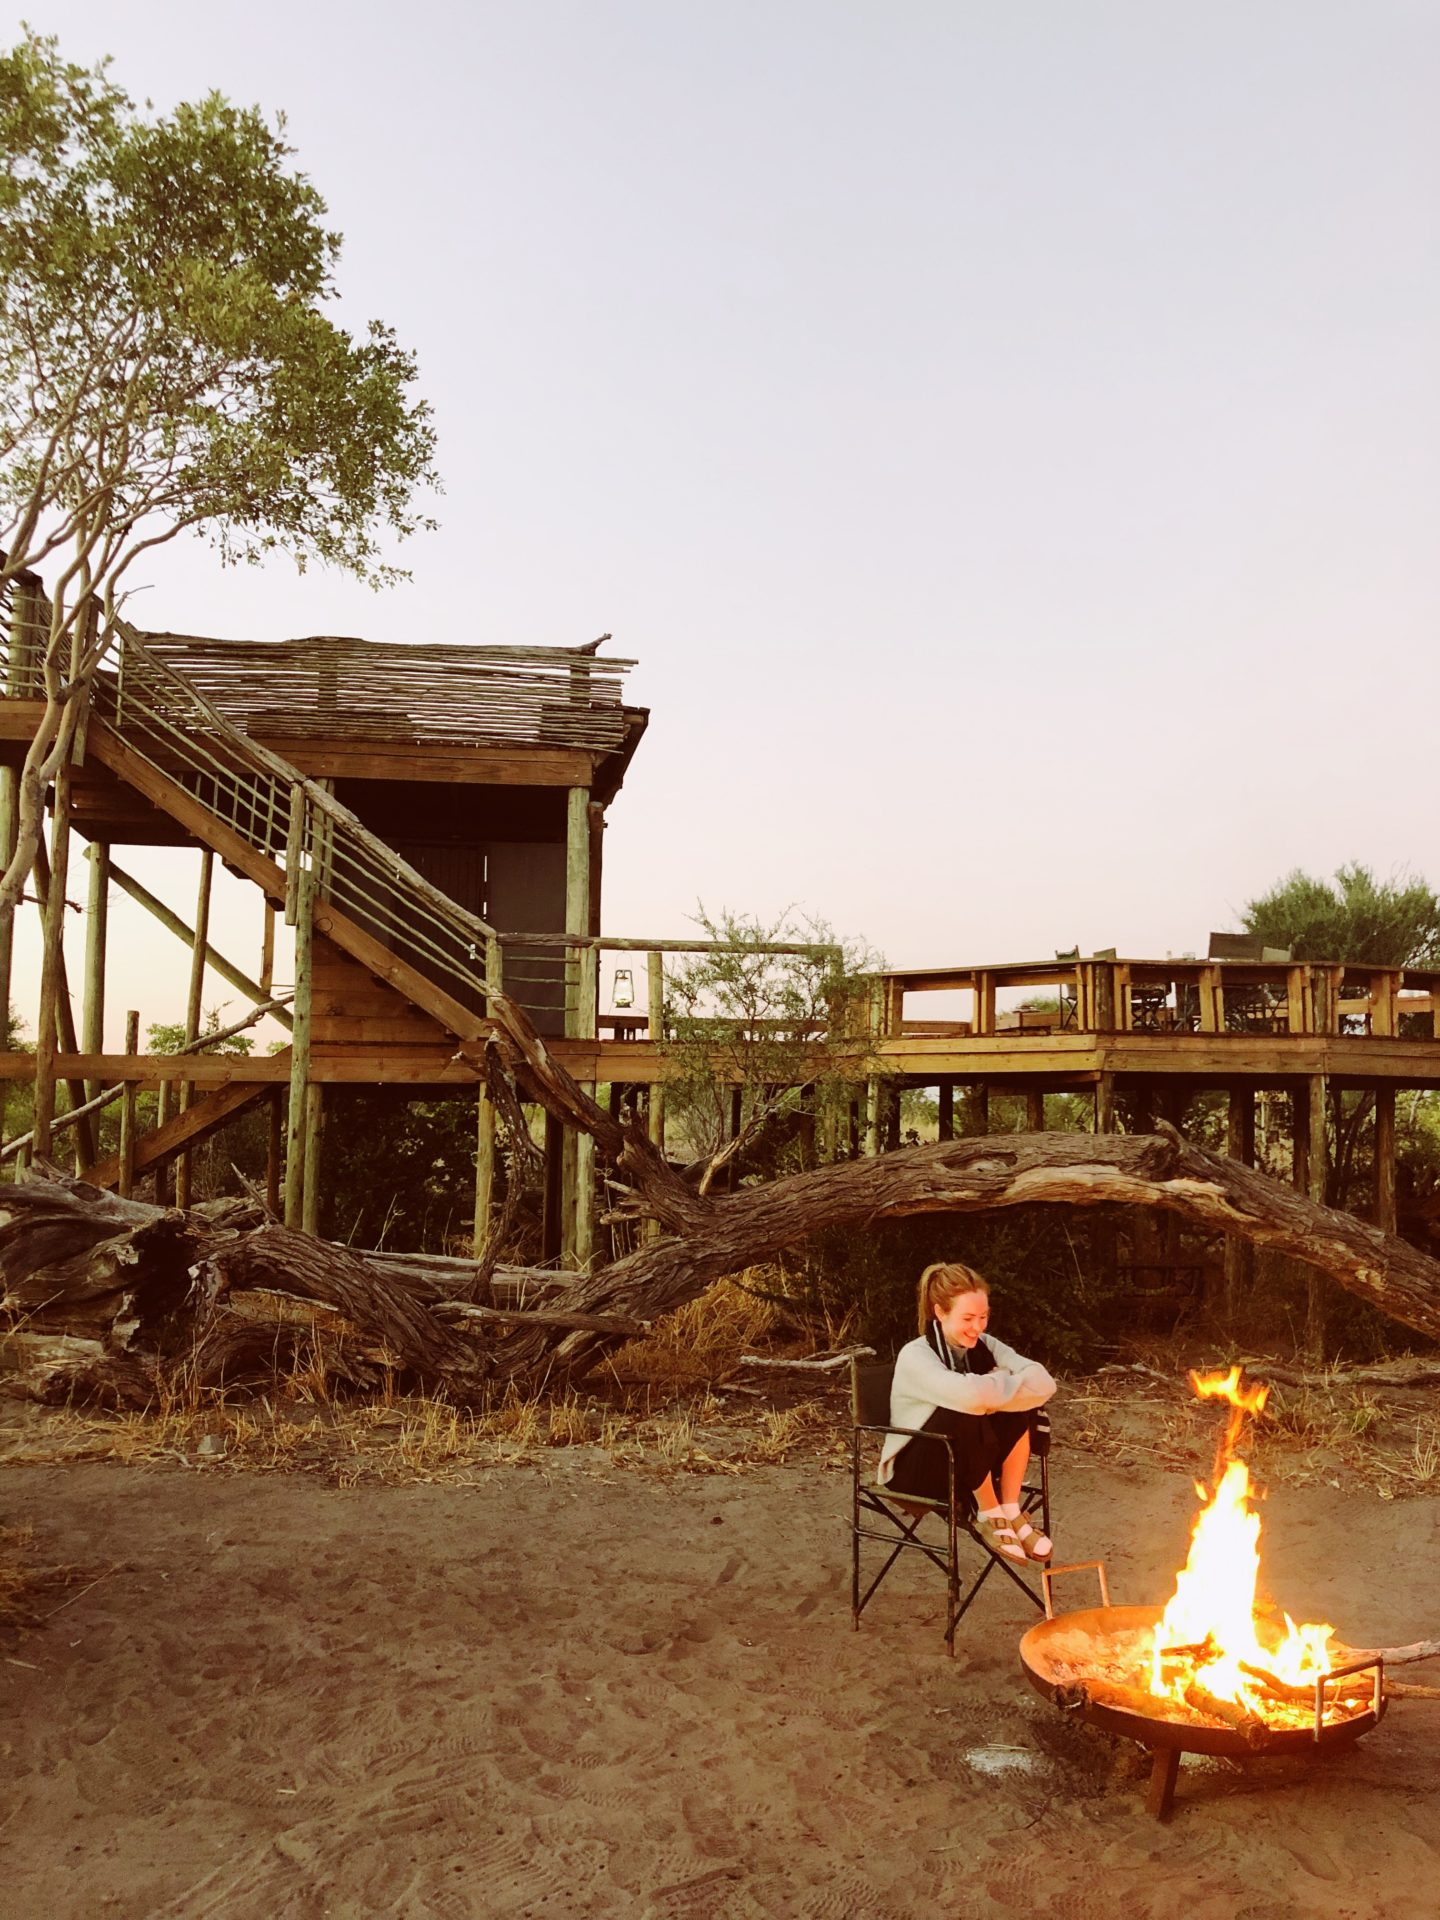 Staying at the Skybeds Botswana